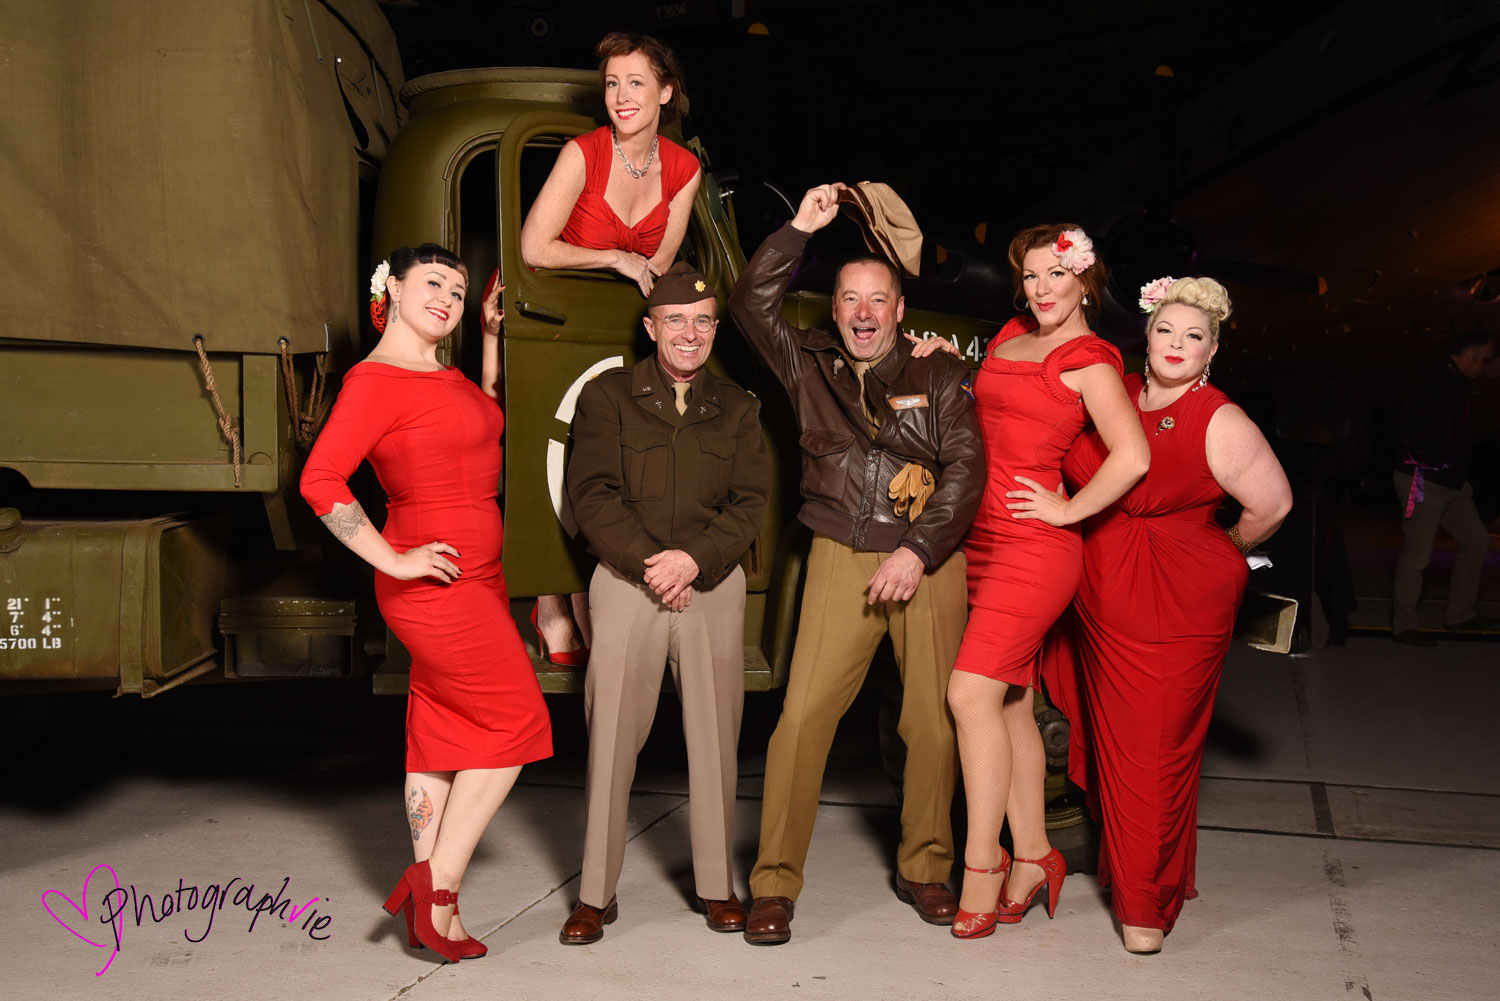 Imperial-War-Museum-House-of-Cambridge-Event-40s-Dressing-Up-Pin-up-Photobooth-and-Photos-by-Photographvie-Ely--(25).jpg